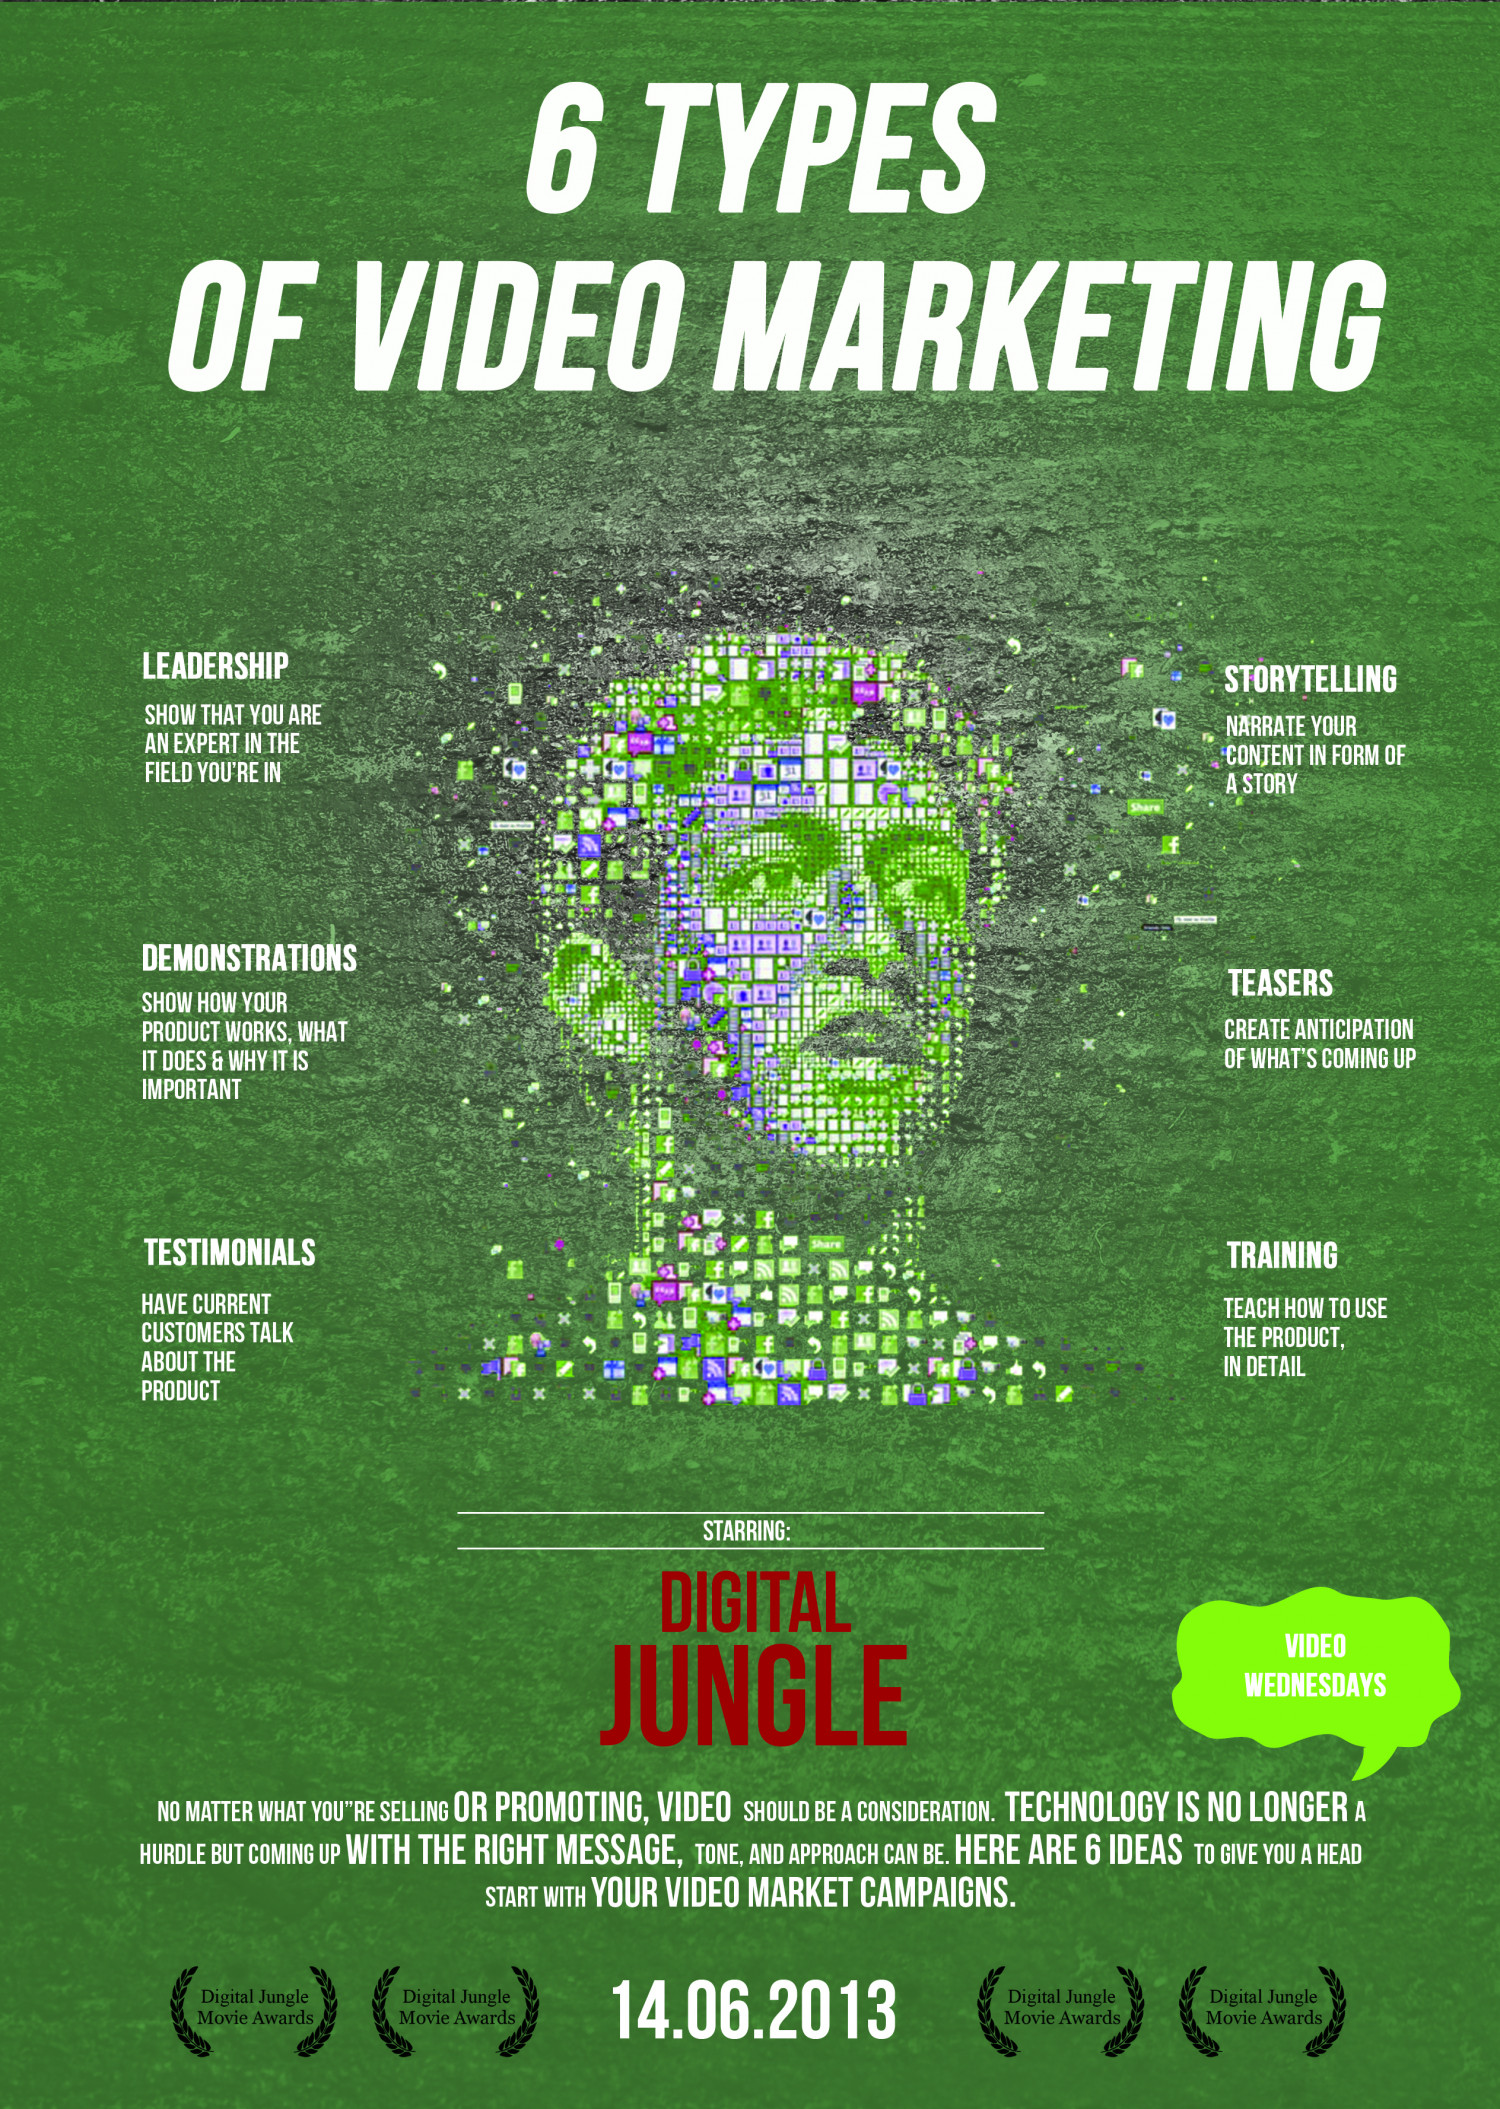 6 Types of Video Marketing Promotion Infographic